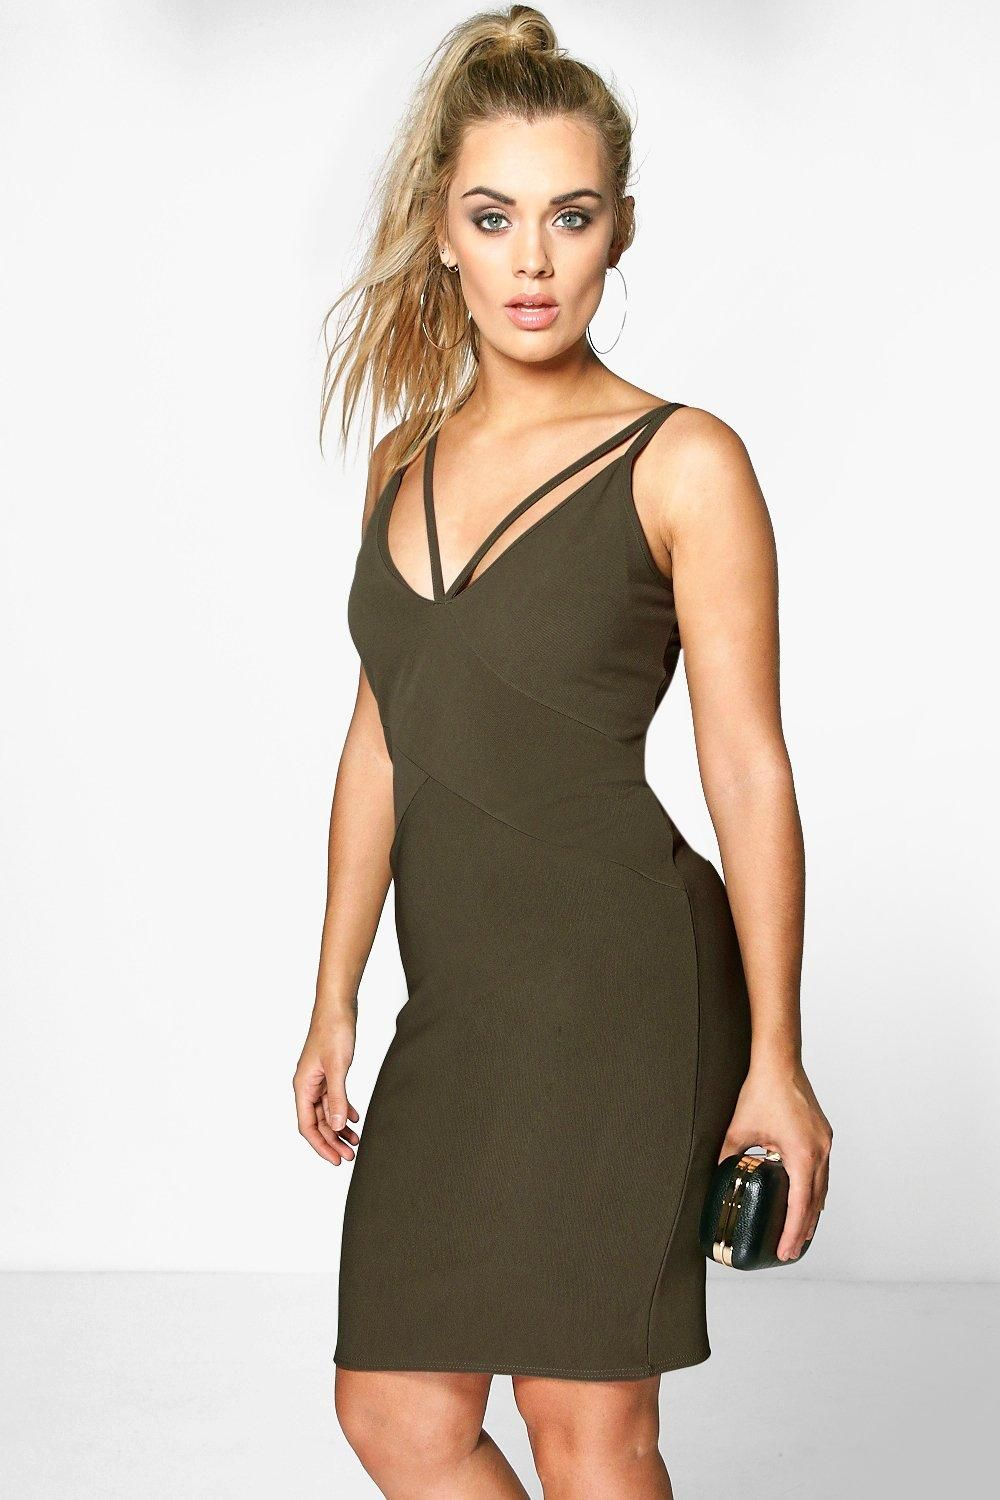 boohoo Plus  You'll find full on fashion for the fuller figure with the boohoo Plus range. Delivering directional designs for UK sizes 16 to 24, this ultra-flattering collection combines perfectly proportioned fits with statement styles so that you can stay on top of this season's trends.